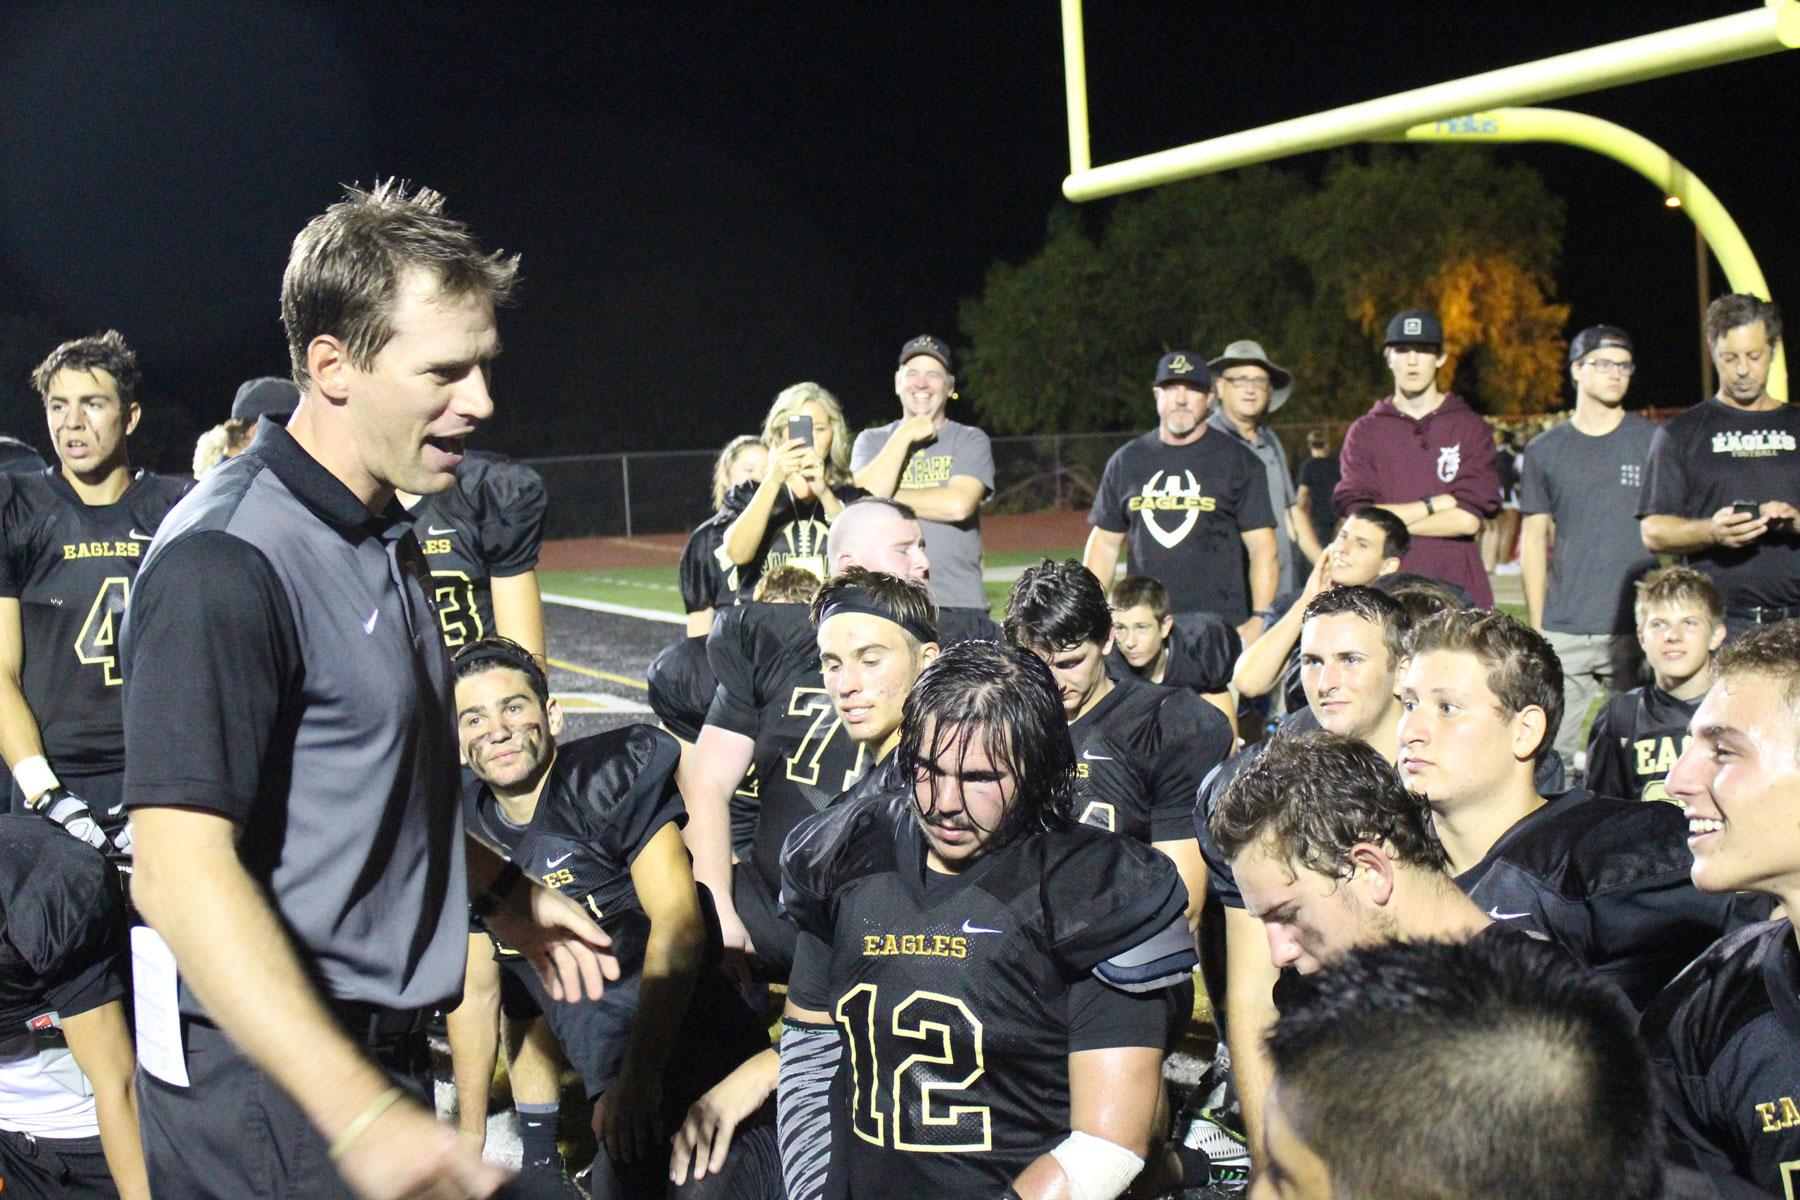 Football coach Tim Kenney congratulates the team after its win against Viewpoint (Photographs courtesy of Caitlin Fowler).